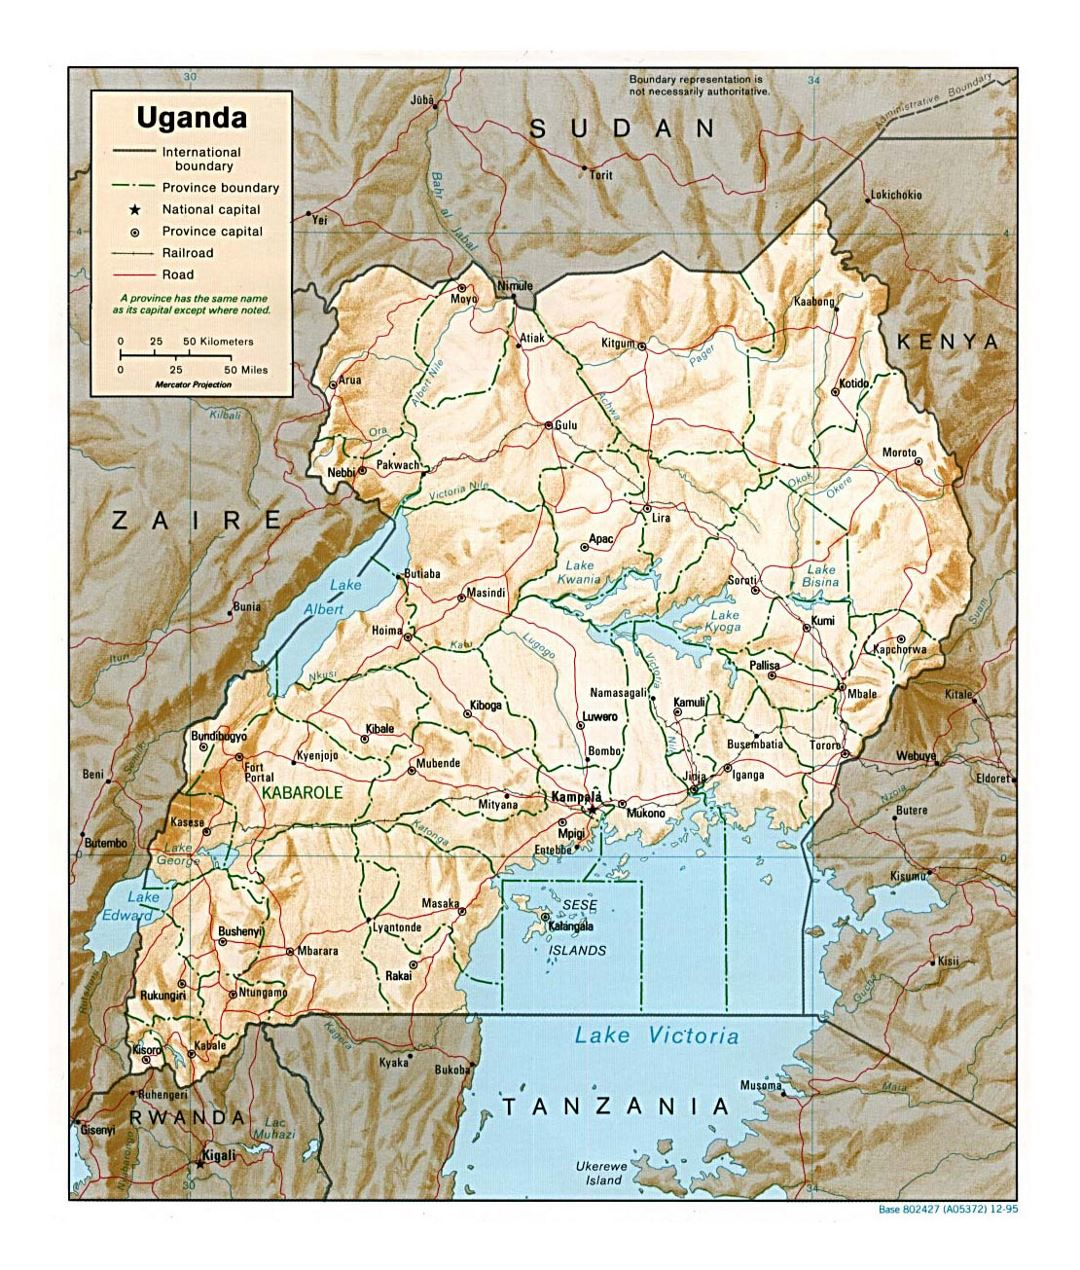 Detailed political and administrative map of Uganda with relief, roads, railroads and major cities - 1995